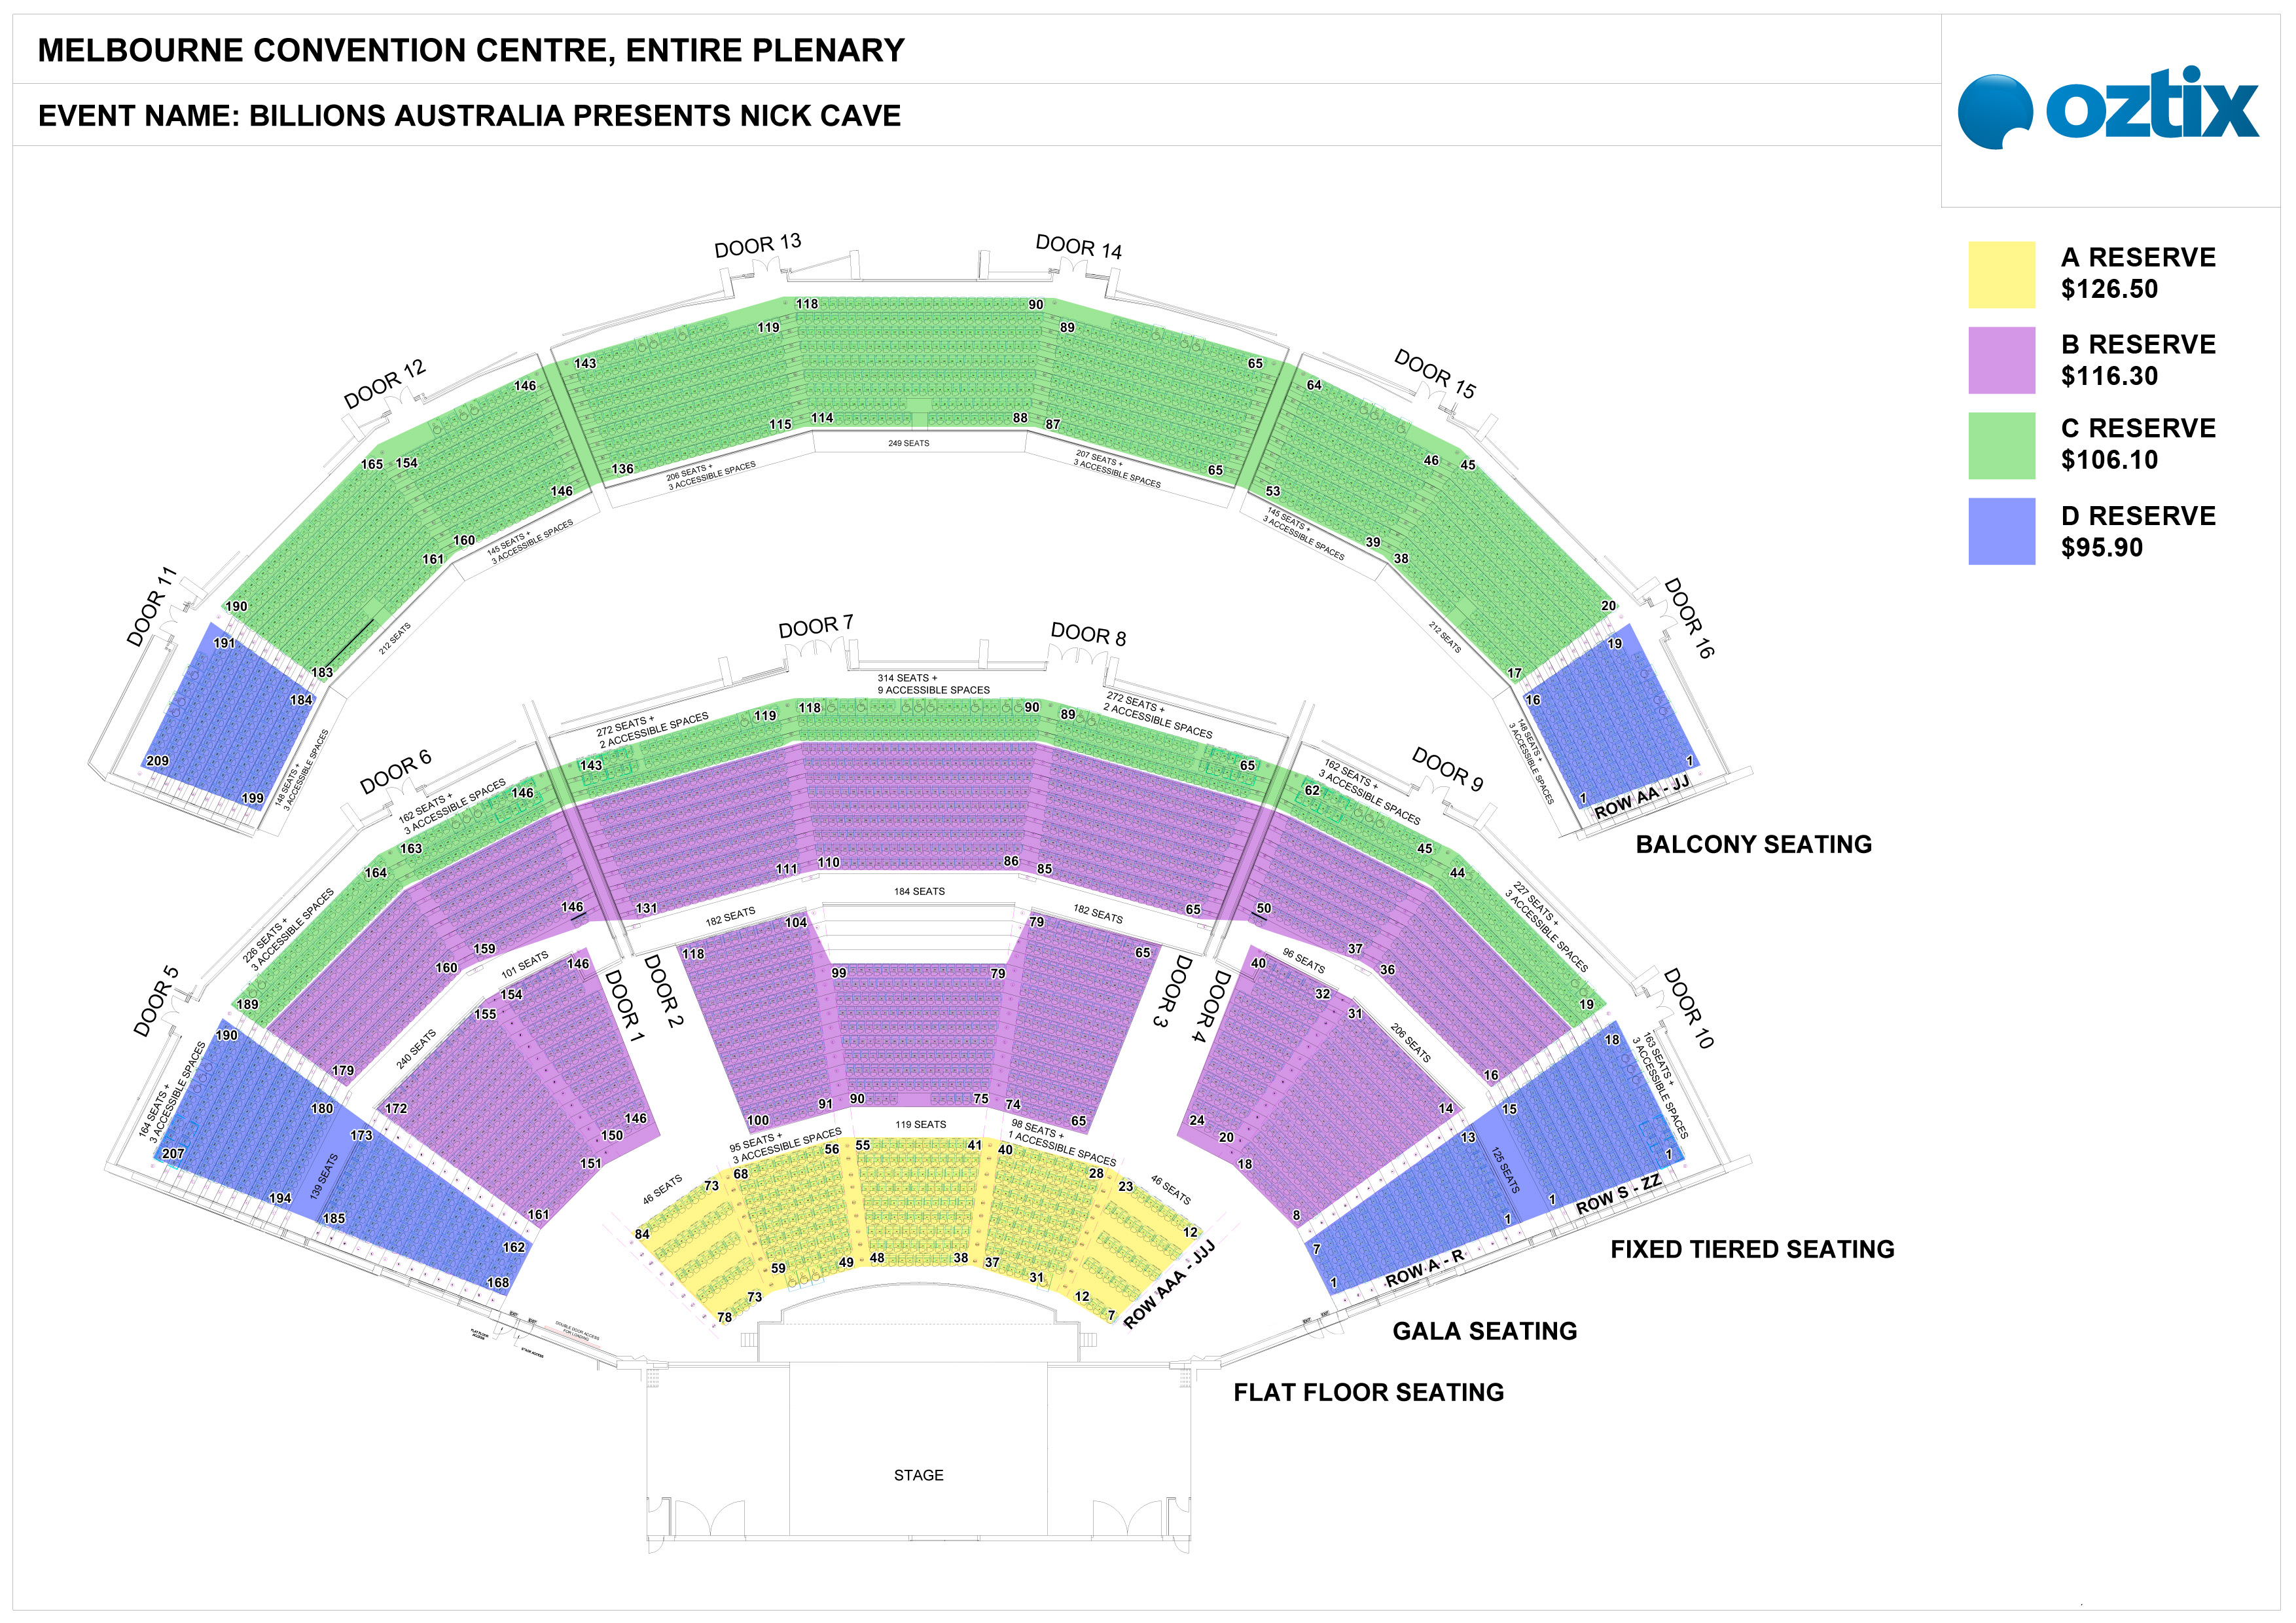 Man Cave Expo Melbourne Tickets : See seating map here